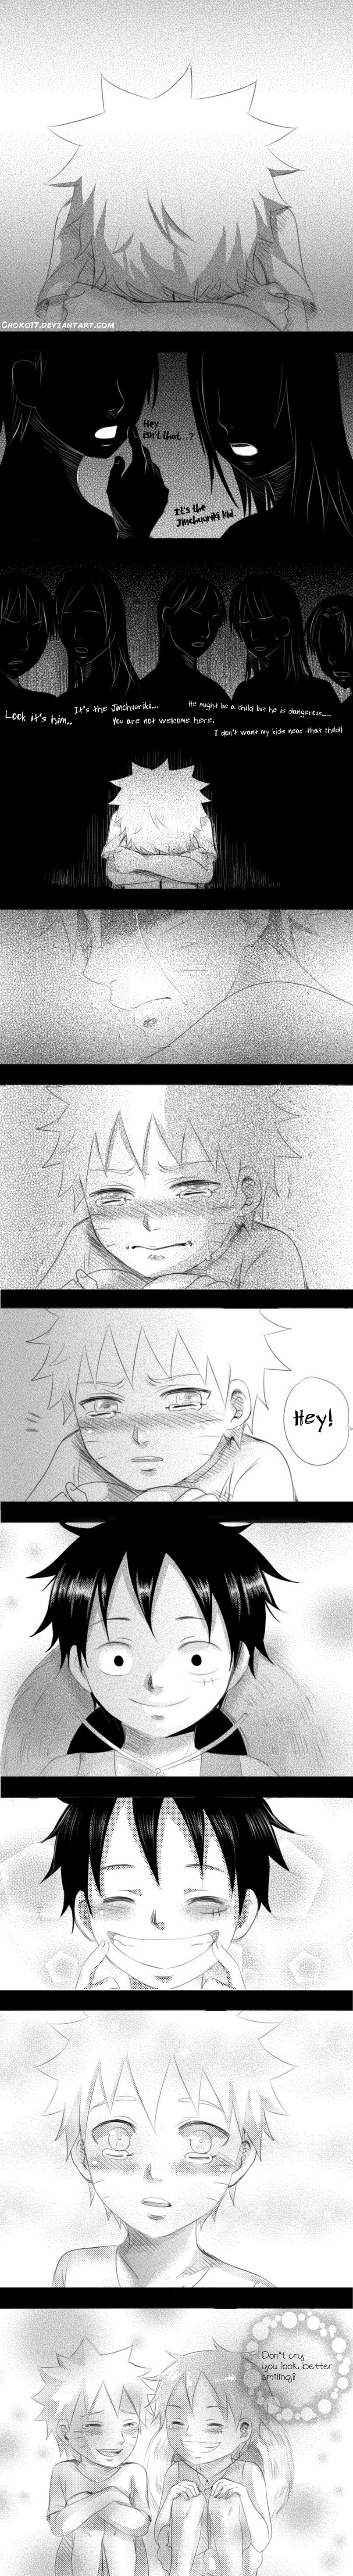 Don't cry .smile